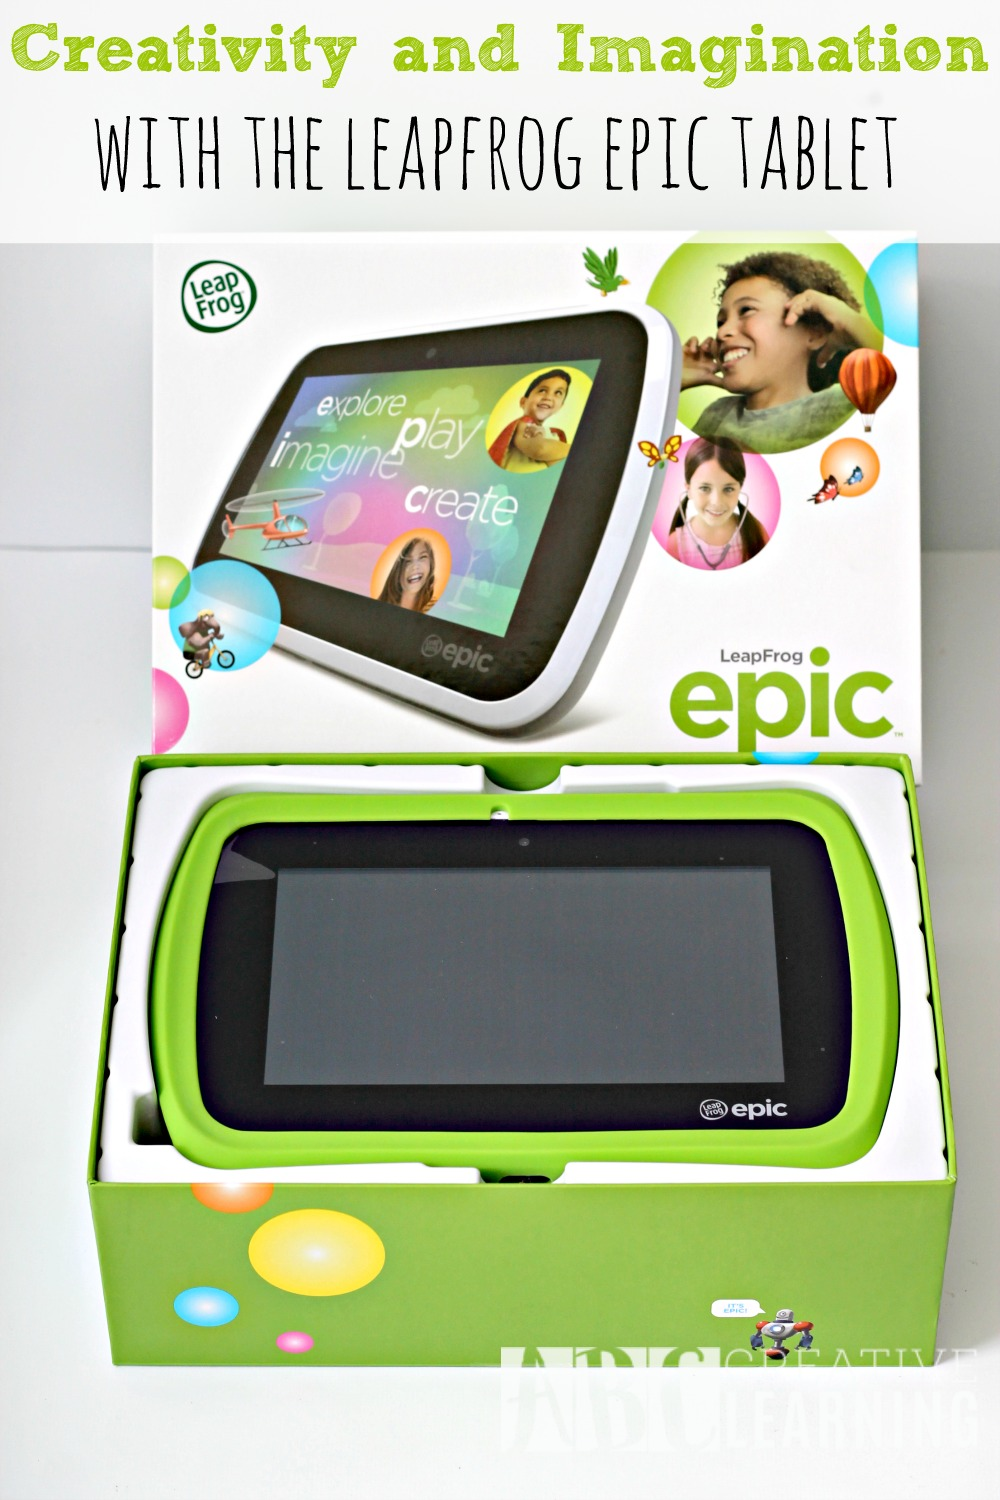 Creativity and Imagination with the LeapFrog Epic Tablet